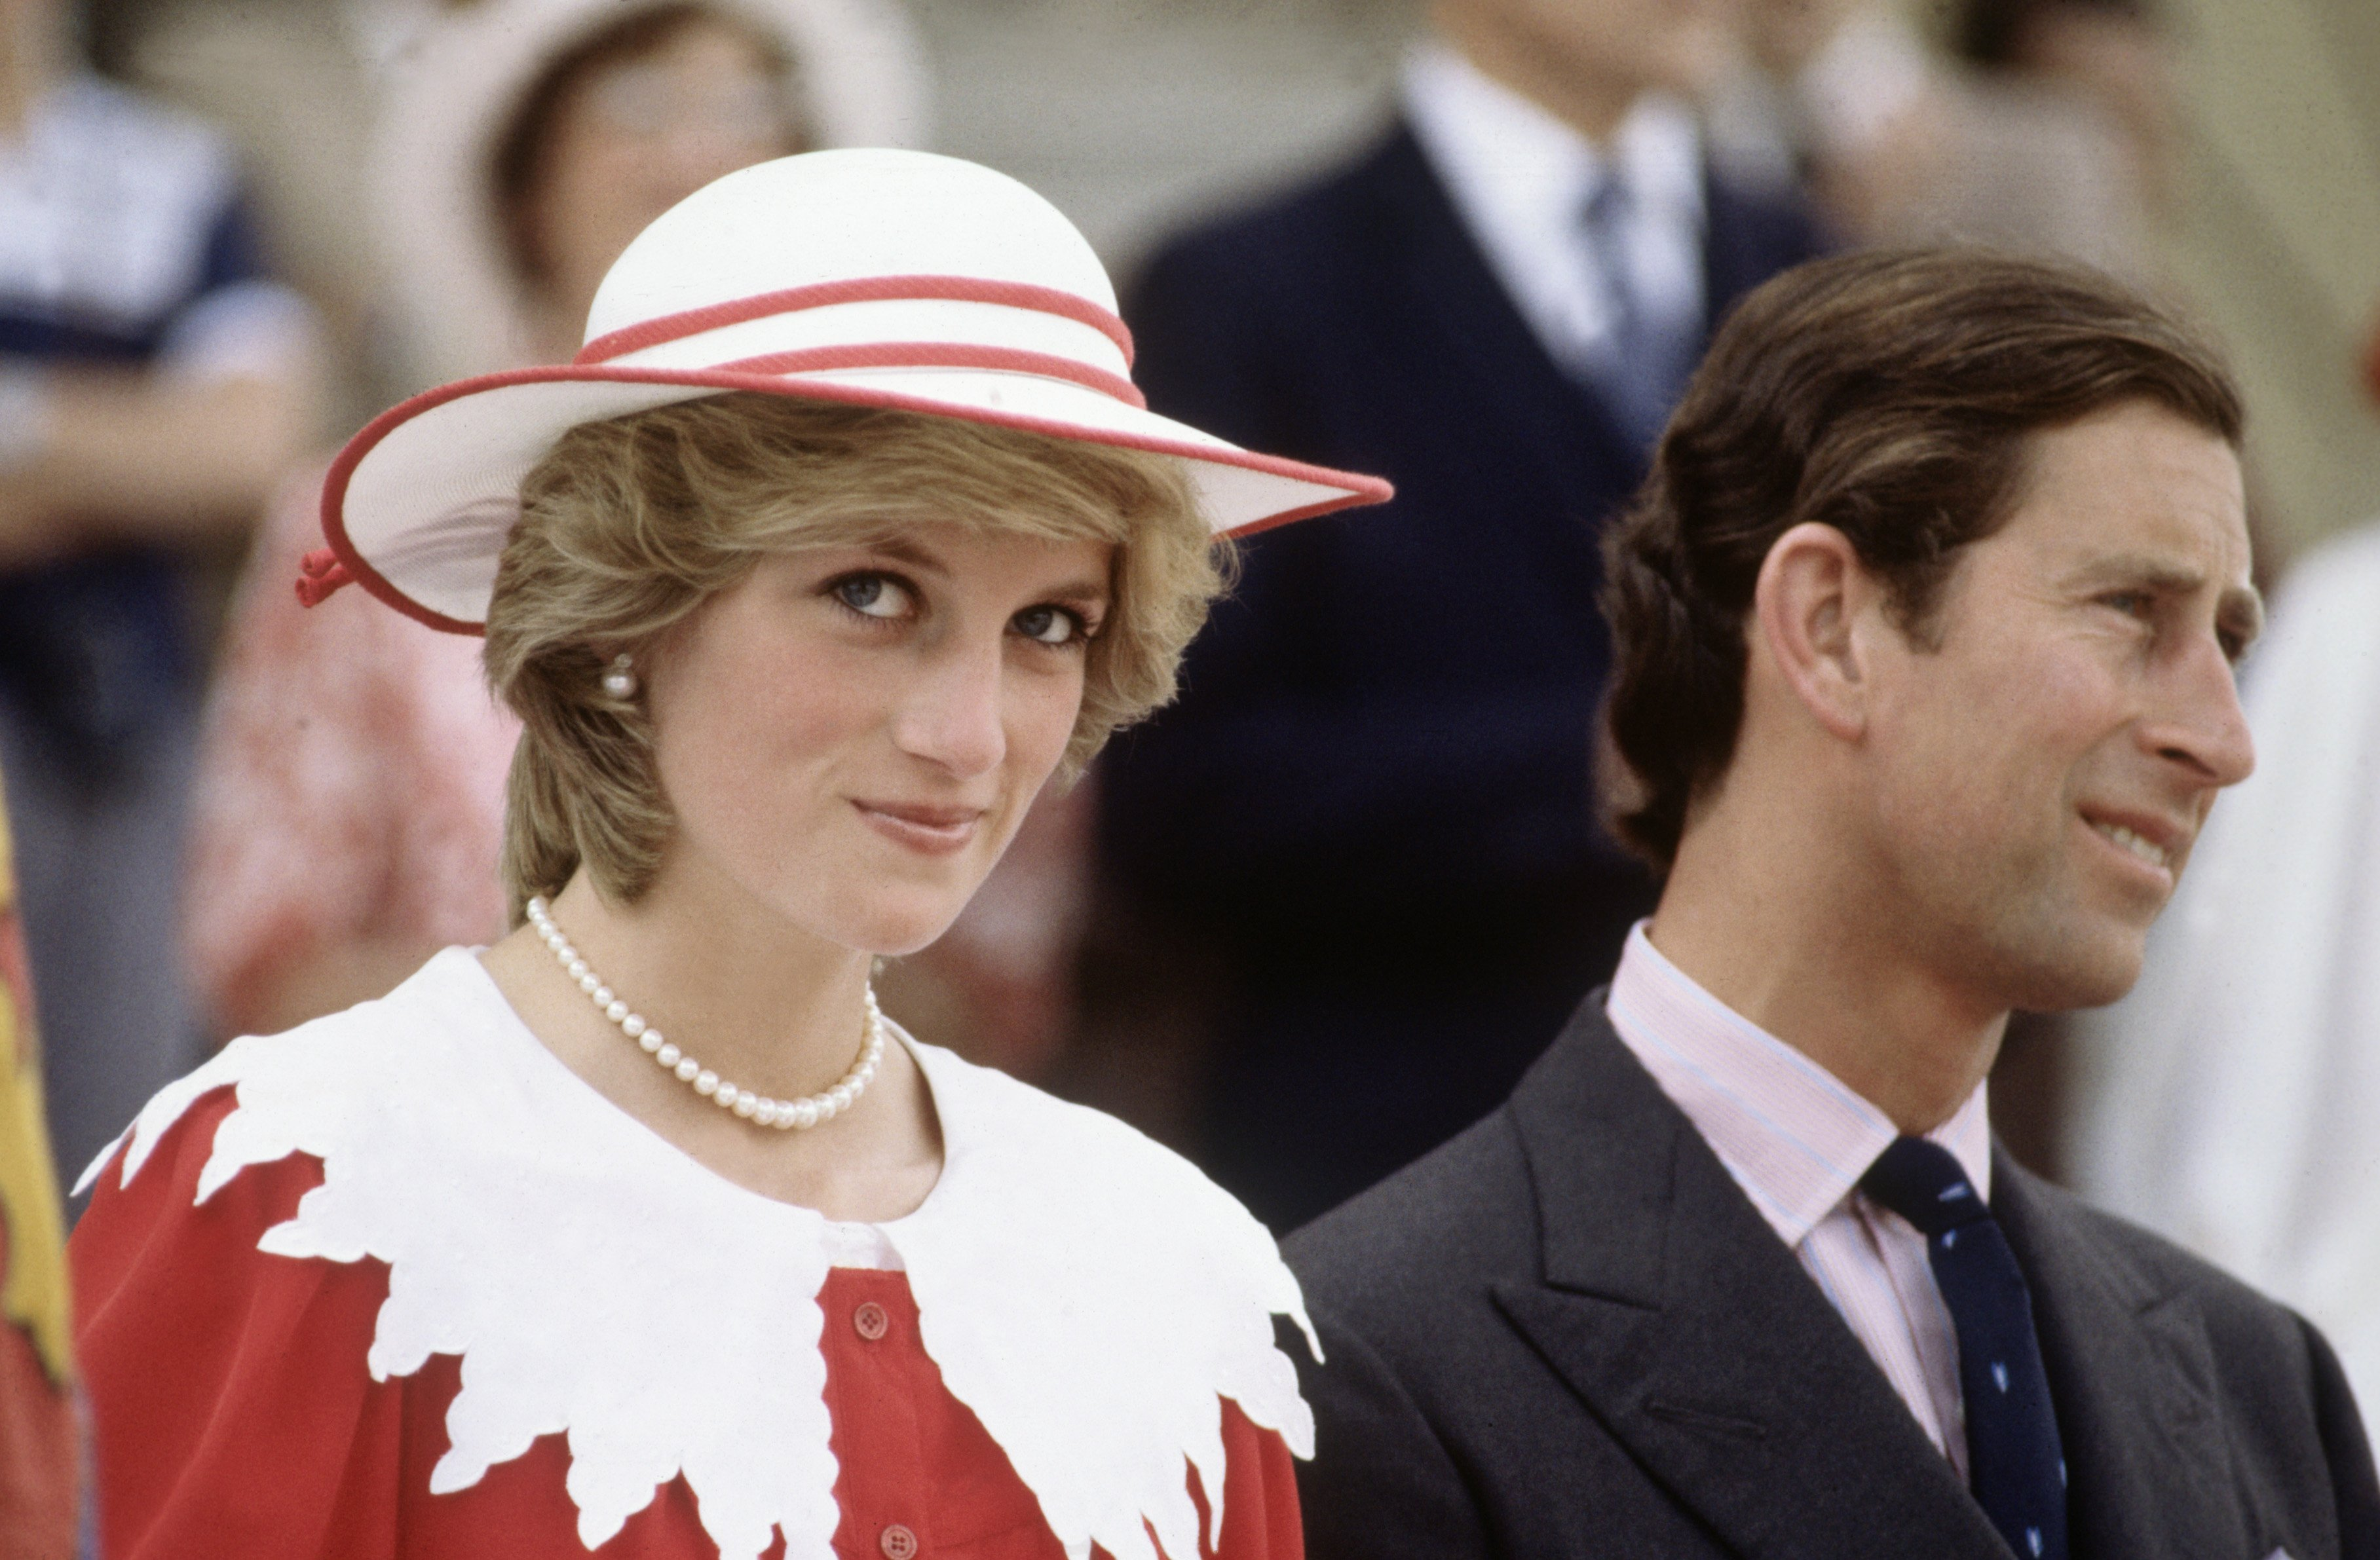 Diana Princess of Wales and Prince Charles during the Royal Tour of Canada on June 29, 1983. | Photo: GettyImages